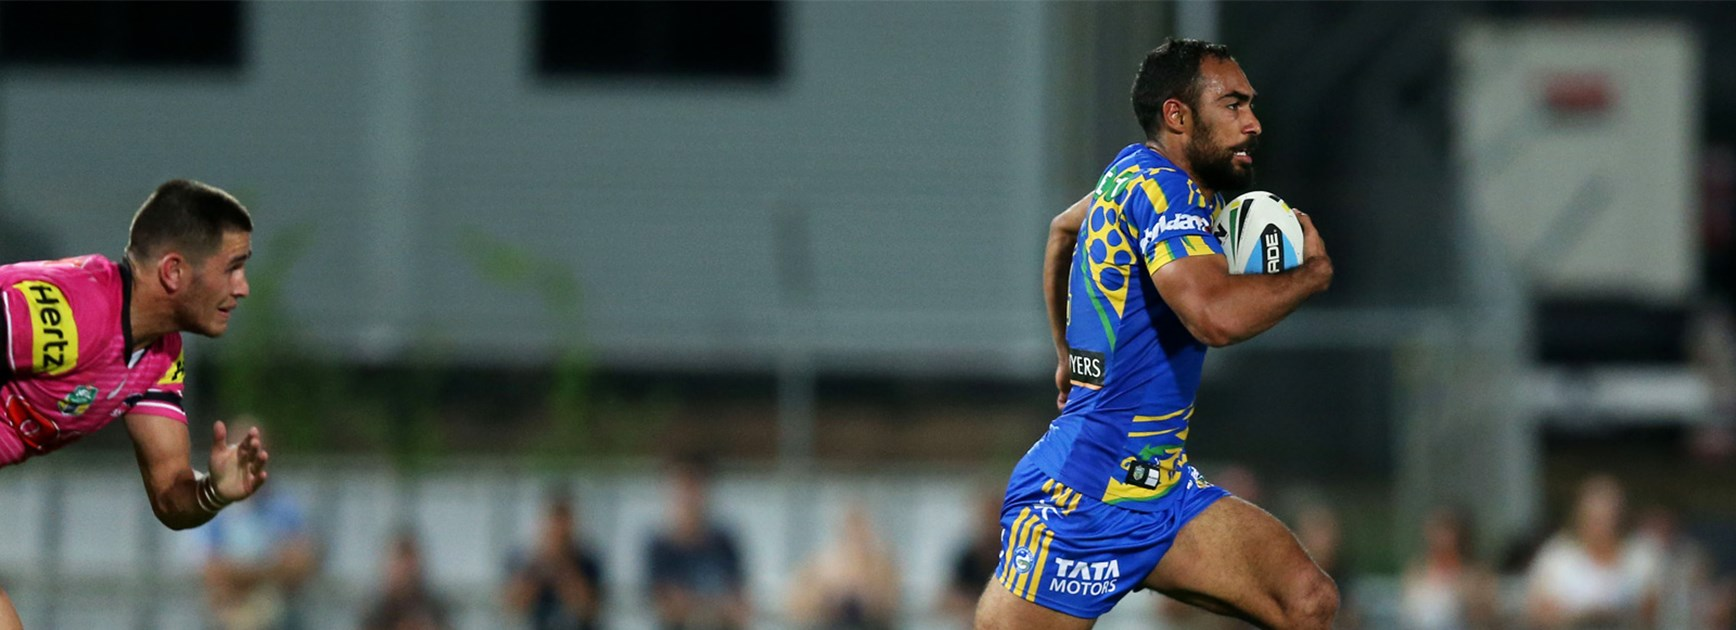 Reece Robinson runs away to score the match-winner against Penrith in Darwin on Saturday.